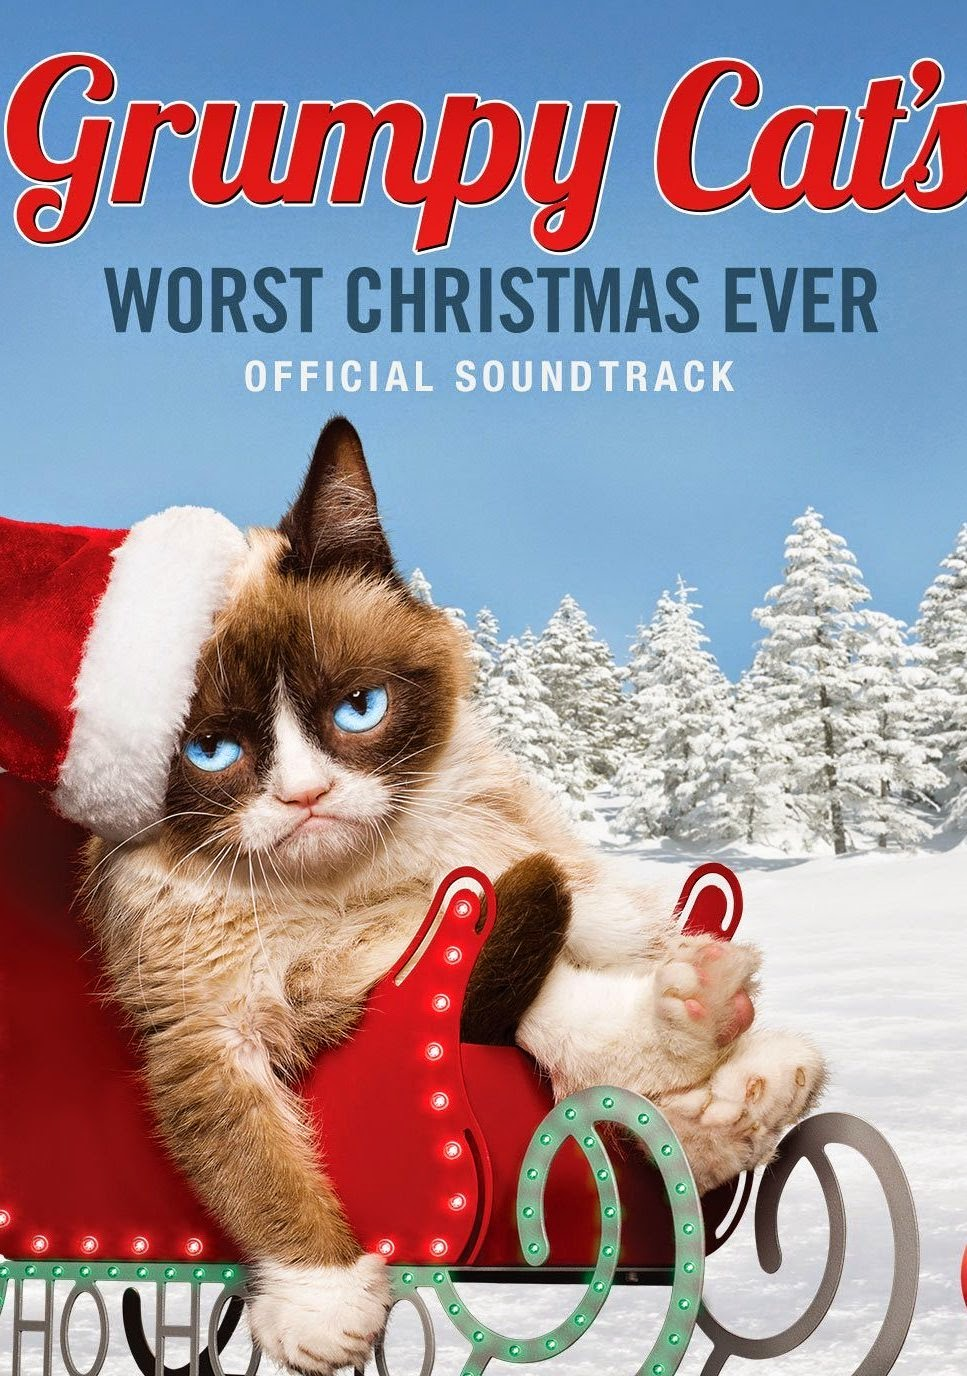 Grumpy-Cat-Worst-Christmas-Ever-Poster.jpg